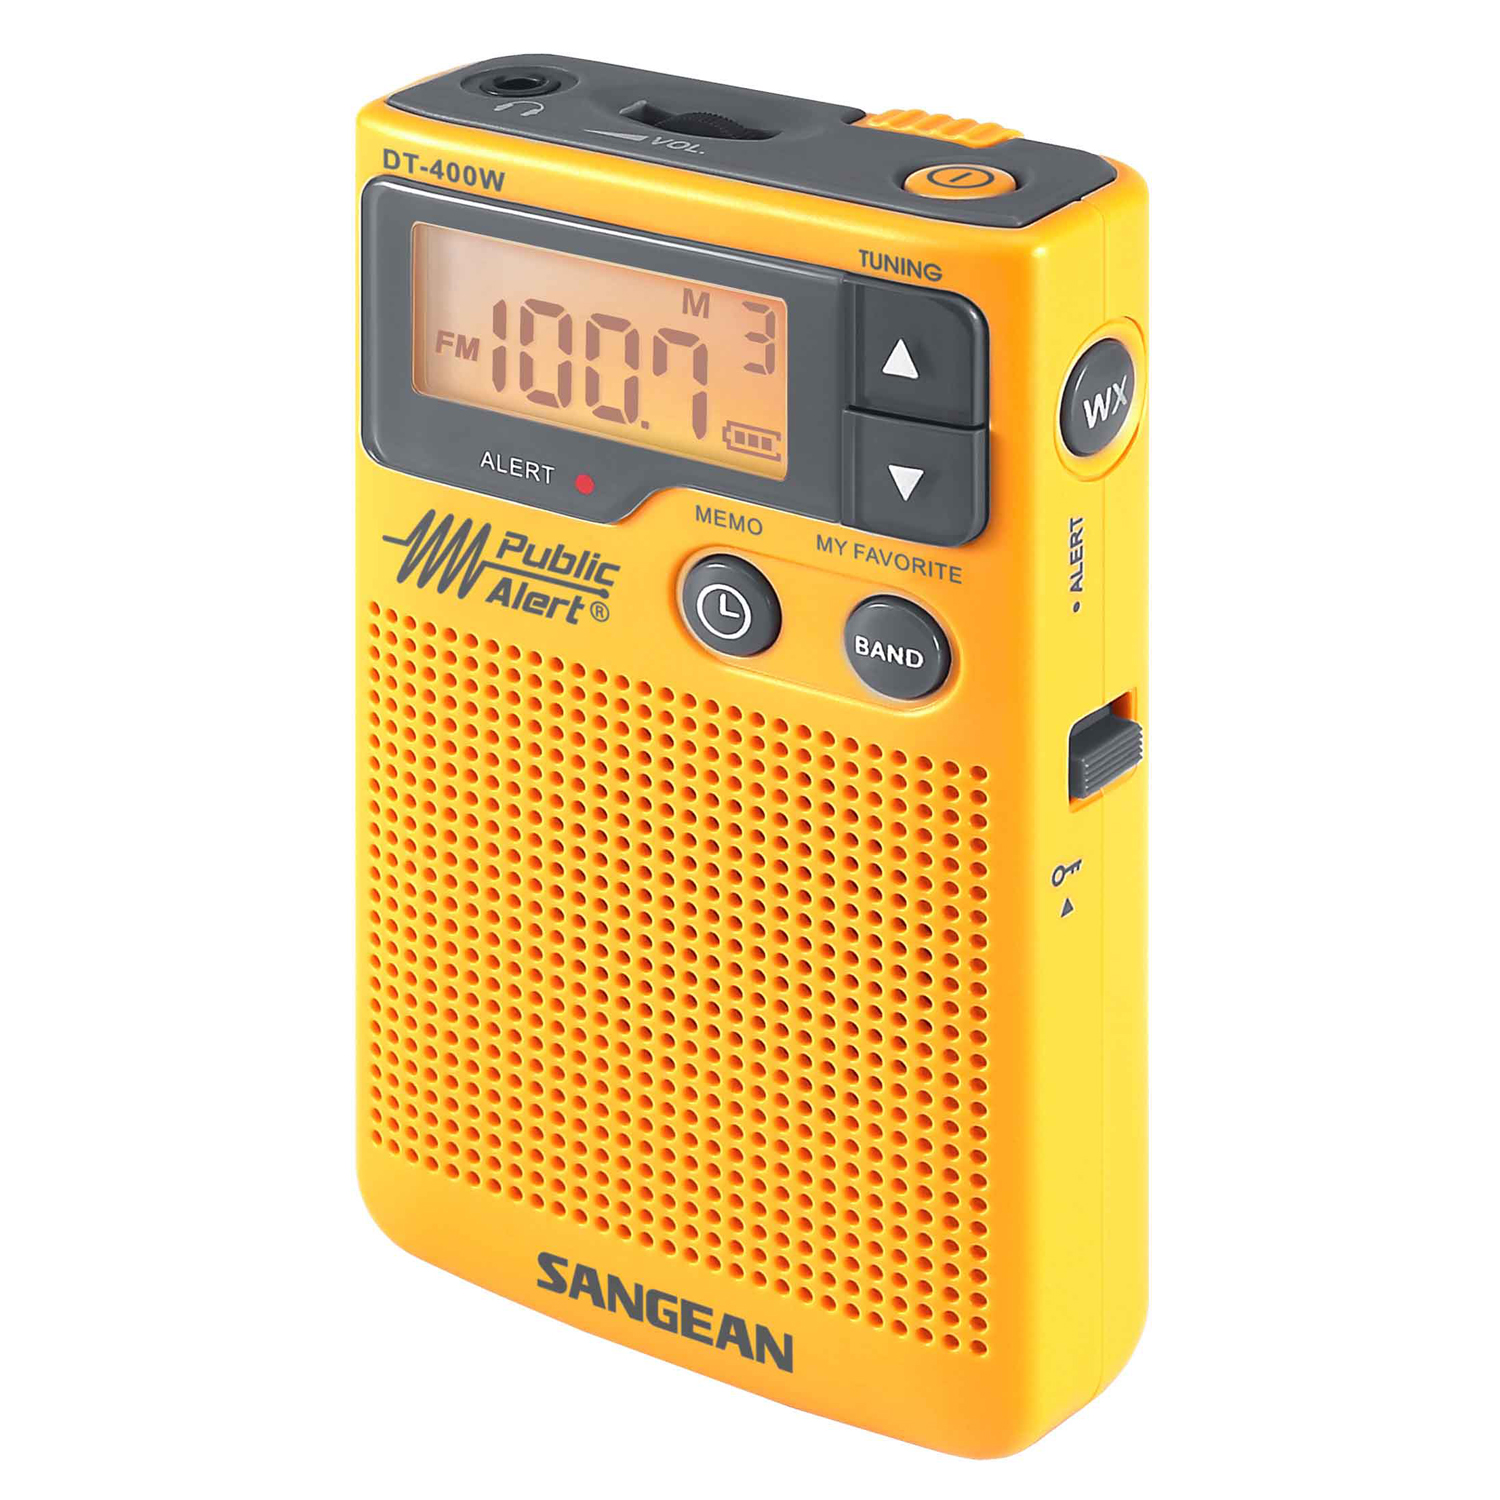 Sangean AM/FM Digital Weather Alert Pocket Radio